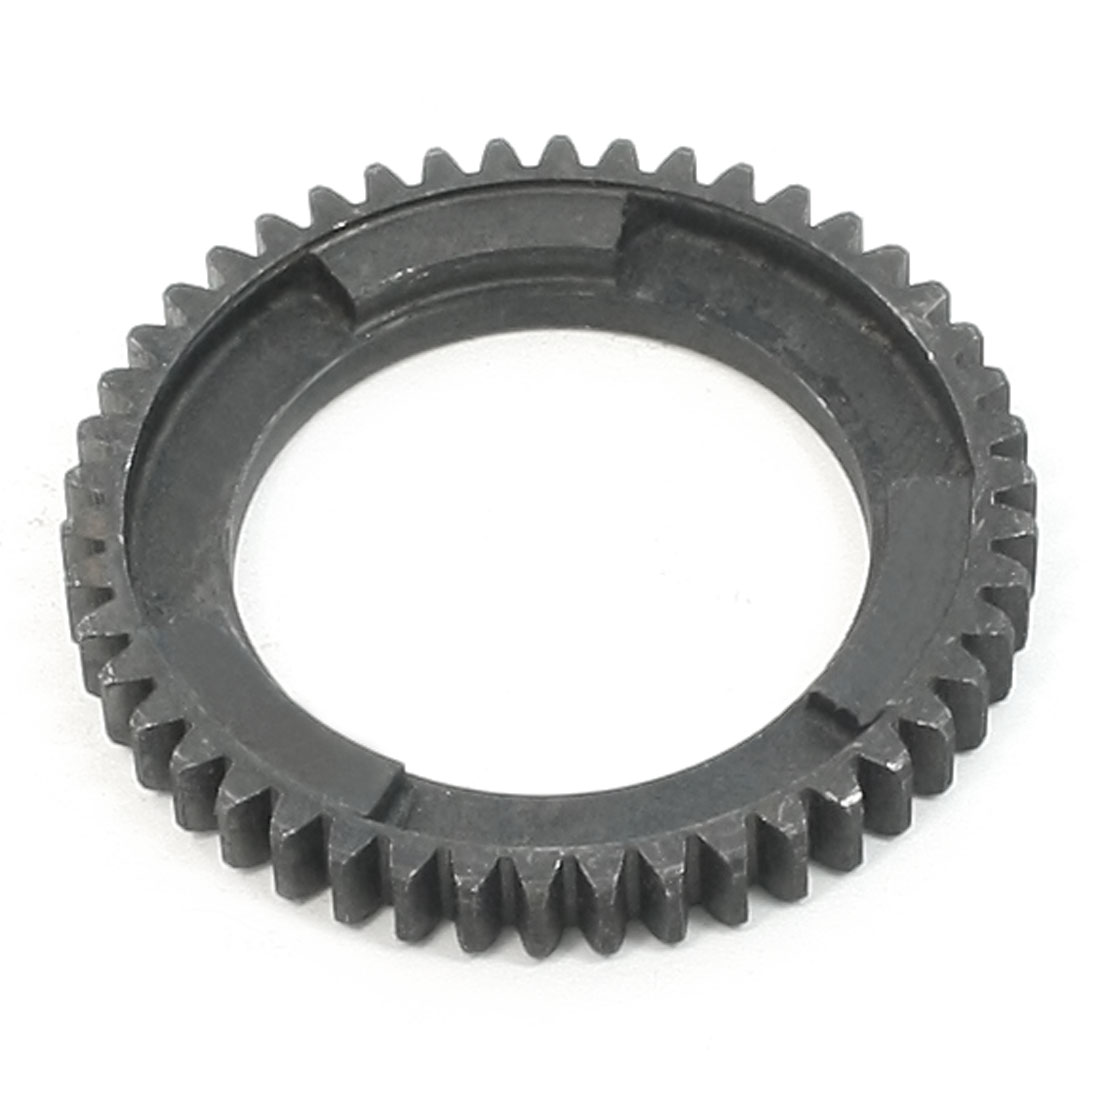 Power Tool Replacement Part Gear Wheel 46T for Bosch 11210 Rotary Hammer